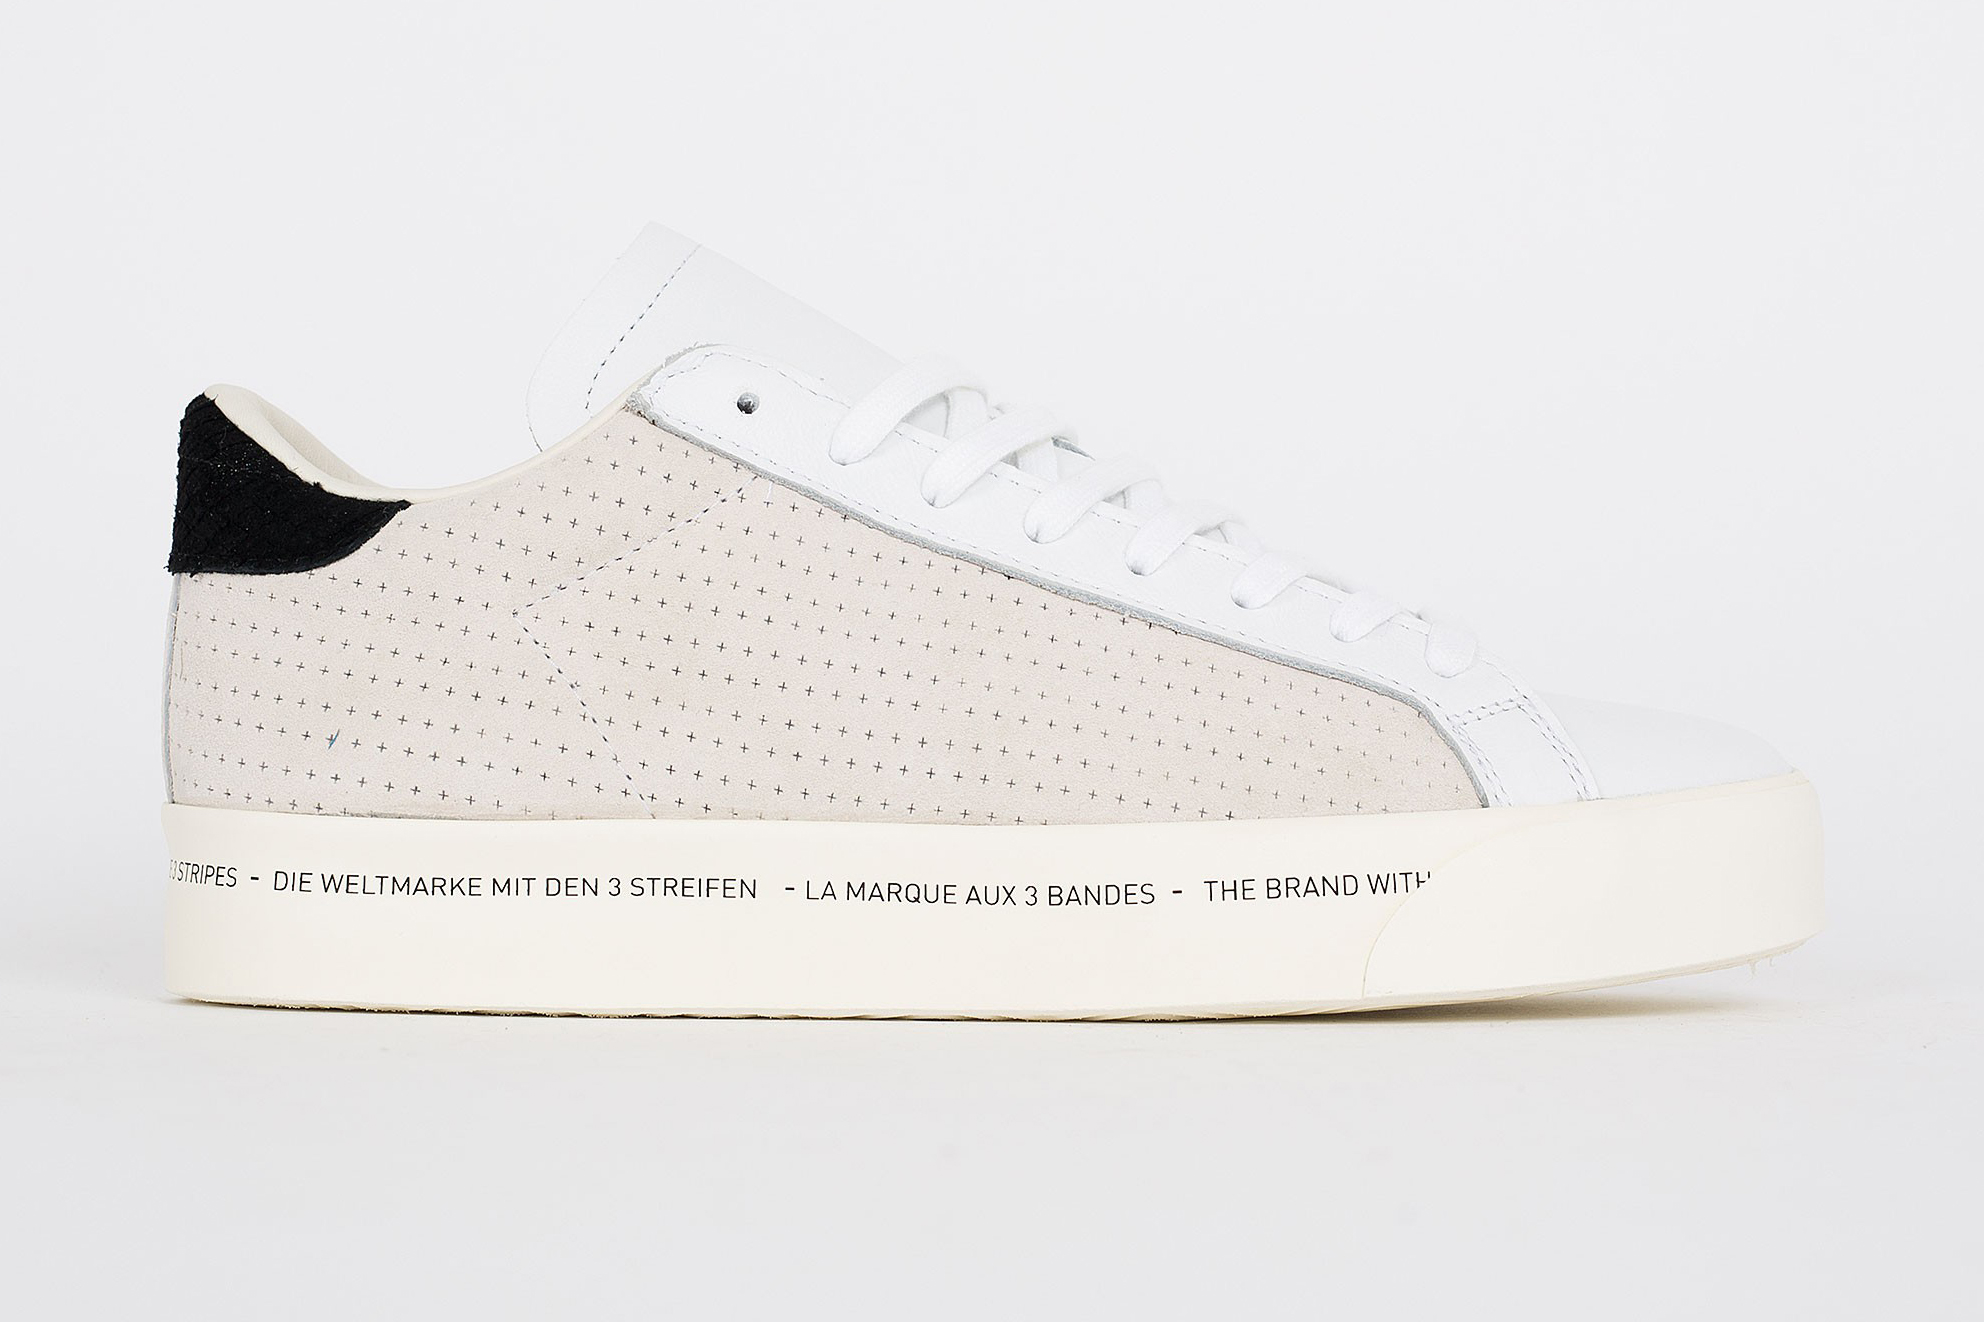 """adidas Rod Laver and Superstar 80s """"Remastered"""" Pack"""